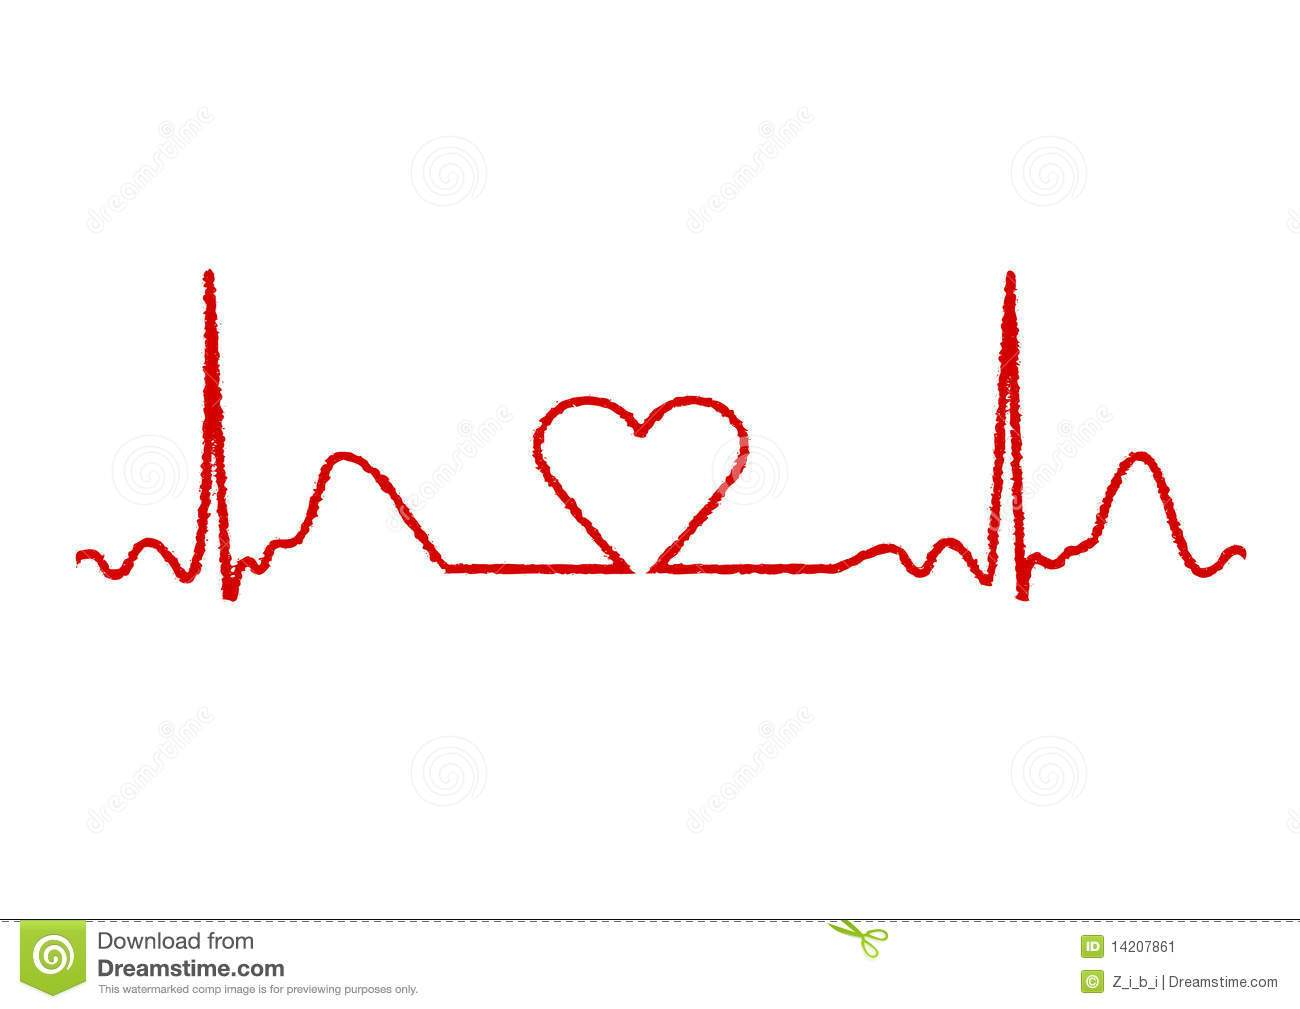 Heart rate monitor clipart 5 » Clipart Portal.